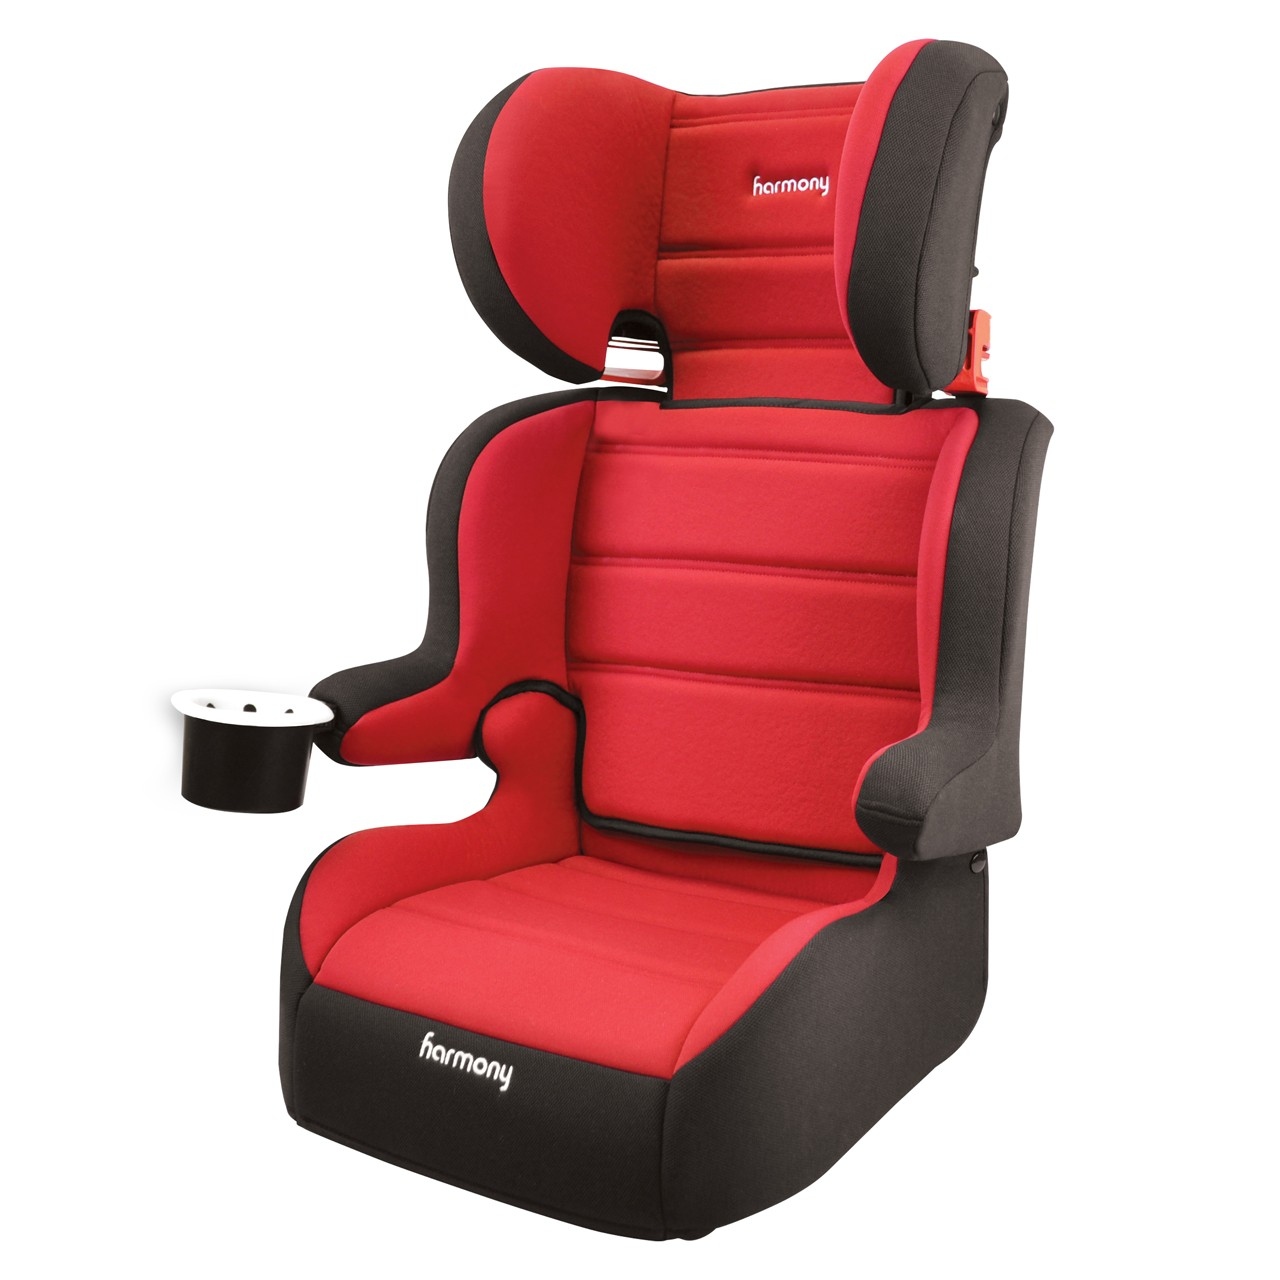 cosco high chair manual folding chairs costco travel booster seat world traveler edition